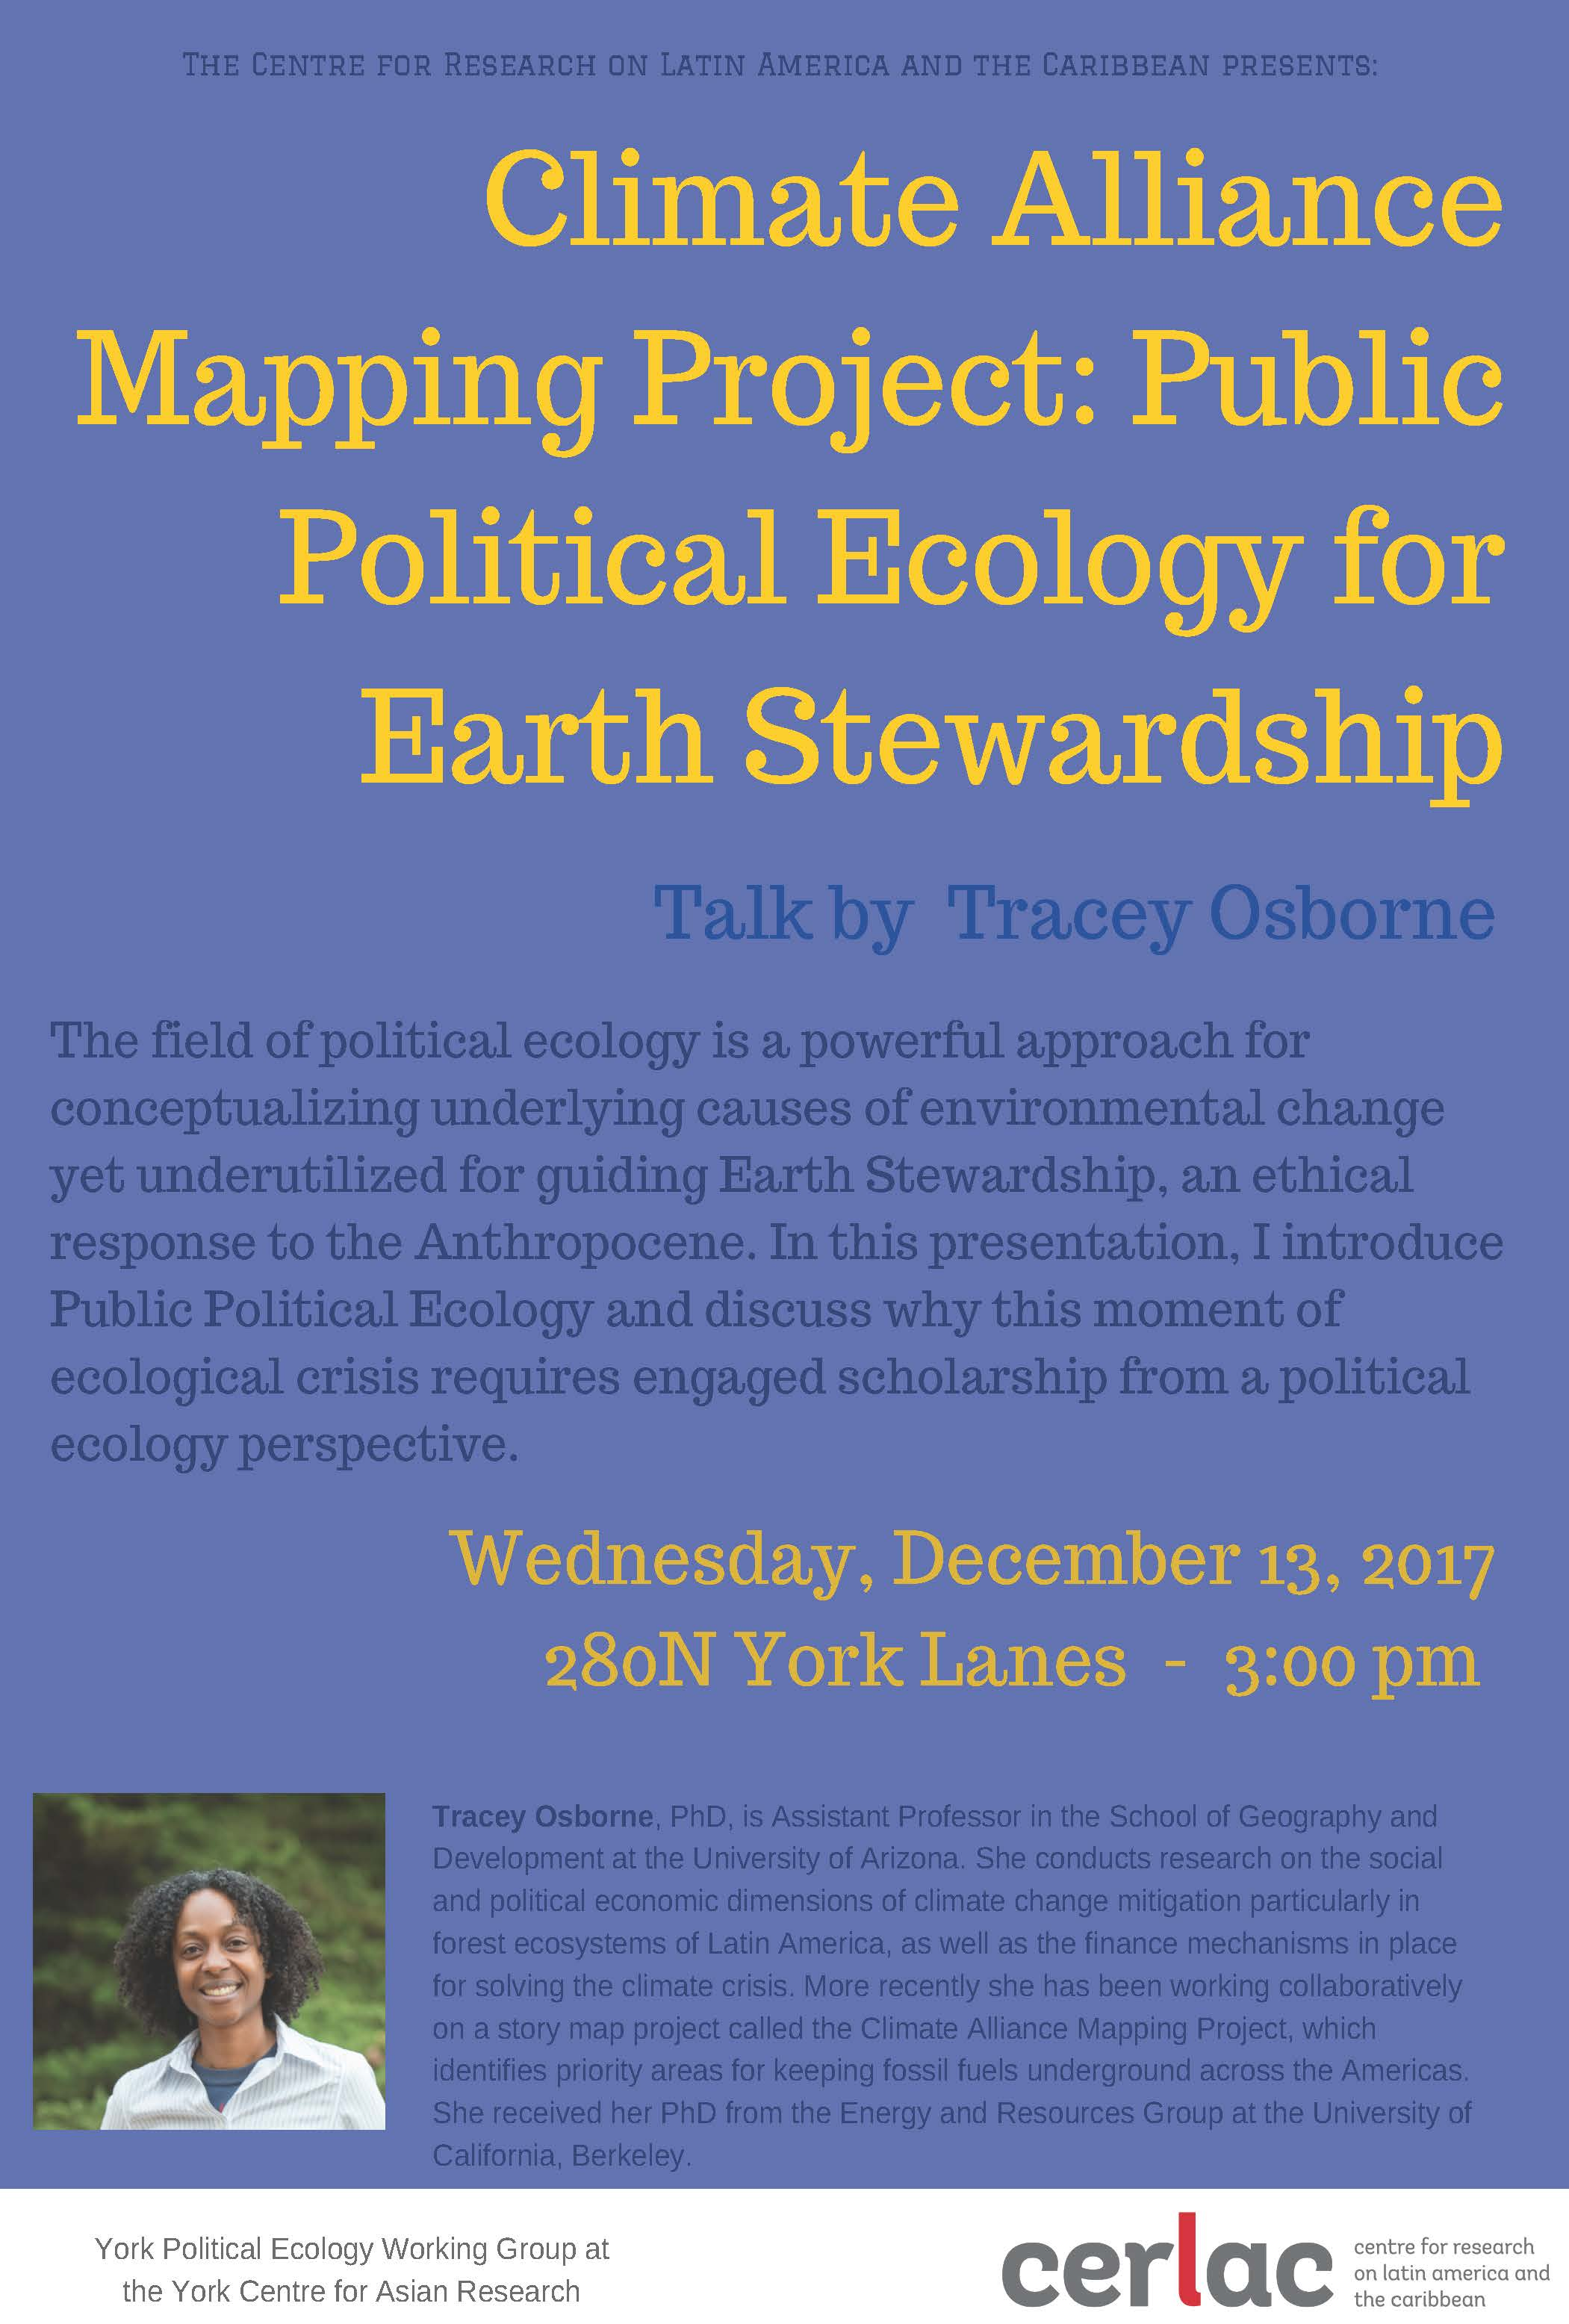 Climate Alliance Mapping Project: Public Political Ecology for Earth Stewardship @ 280N York Lanes